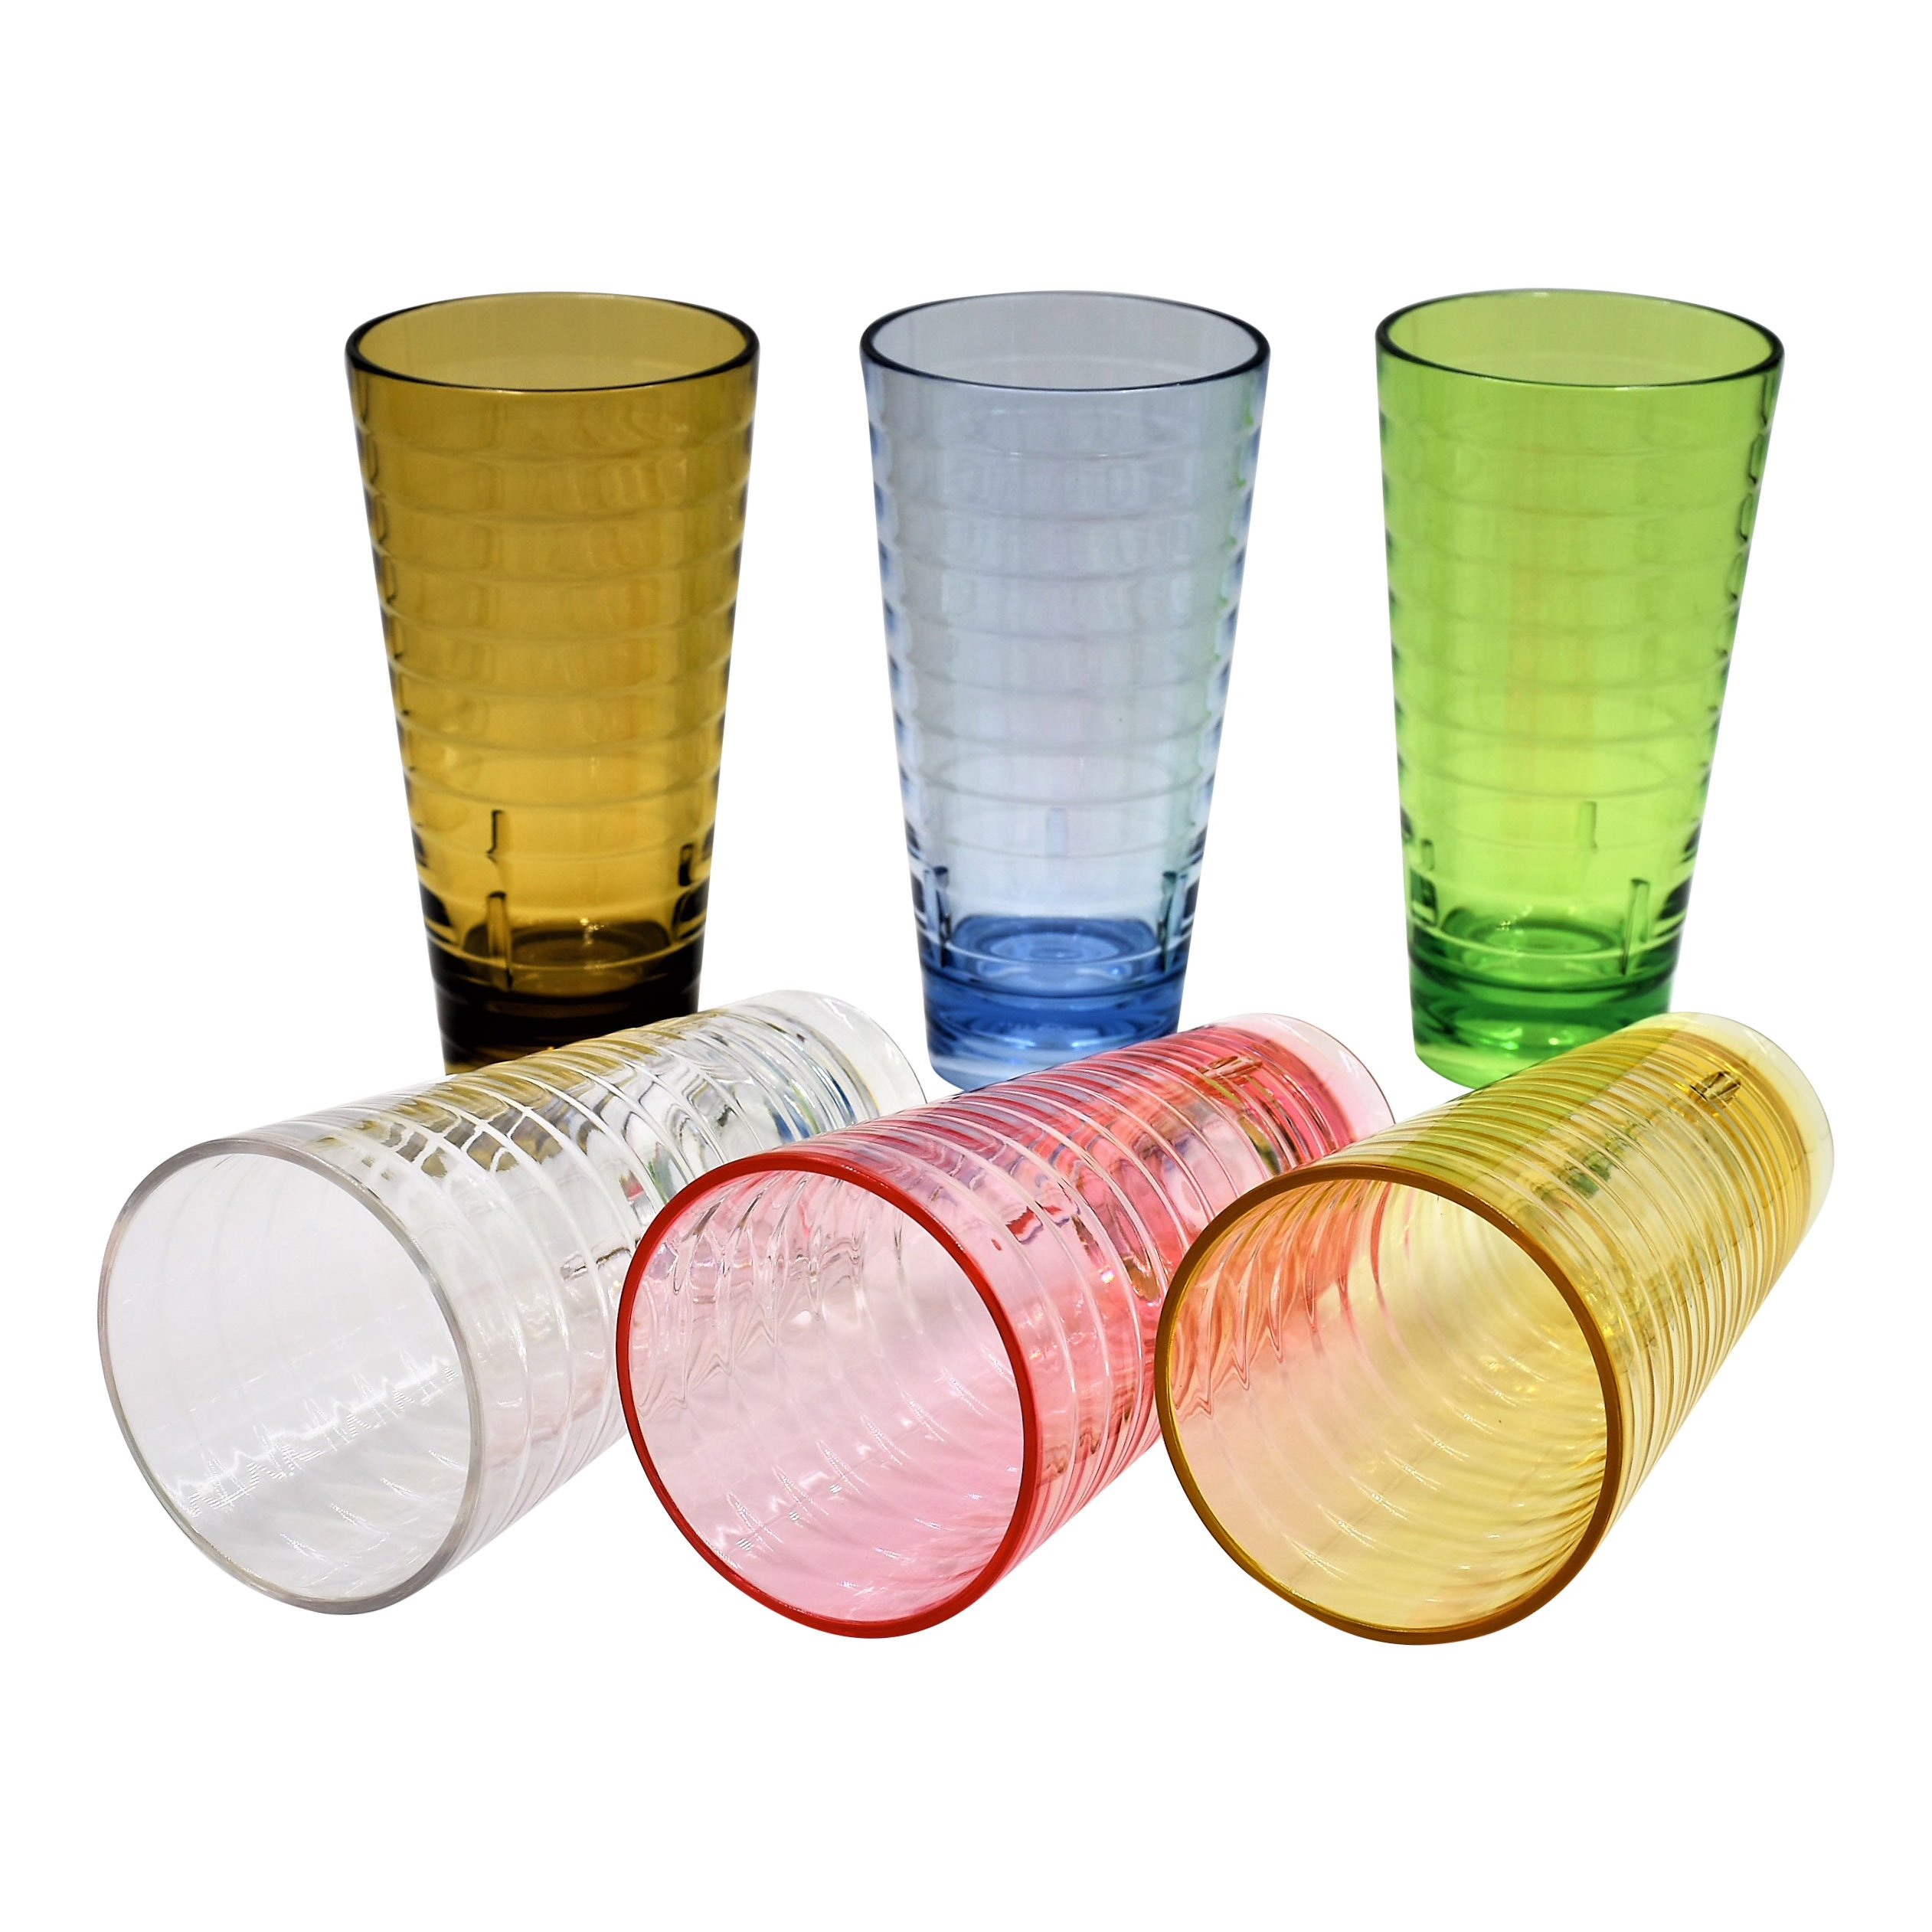 Acrylic Tumblers 18.5oz Break-Resistant/Premium Quality BPA Free Plastic GLASSES/CUPS/Set of 6 Assorted Colors For Water, Iced Tea,Cocktails, Beer, Hot/Cold Beverages, Dishwasher Safe